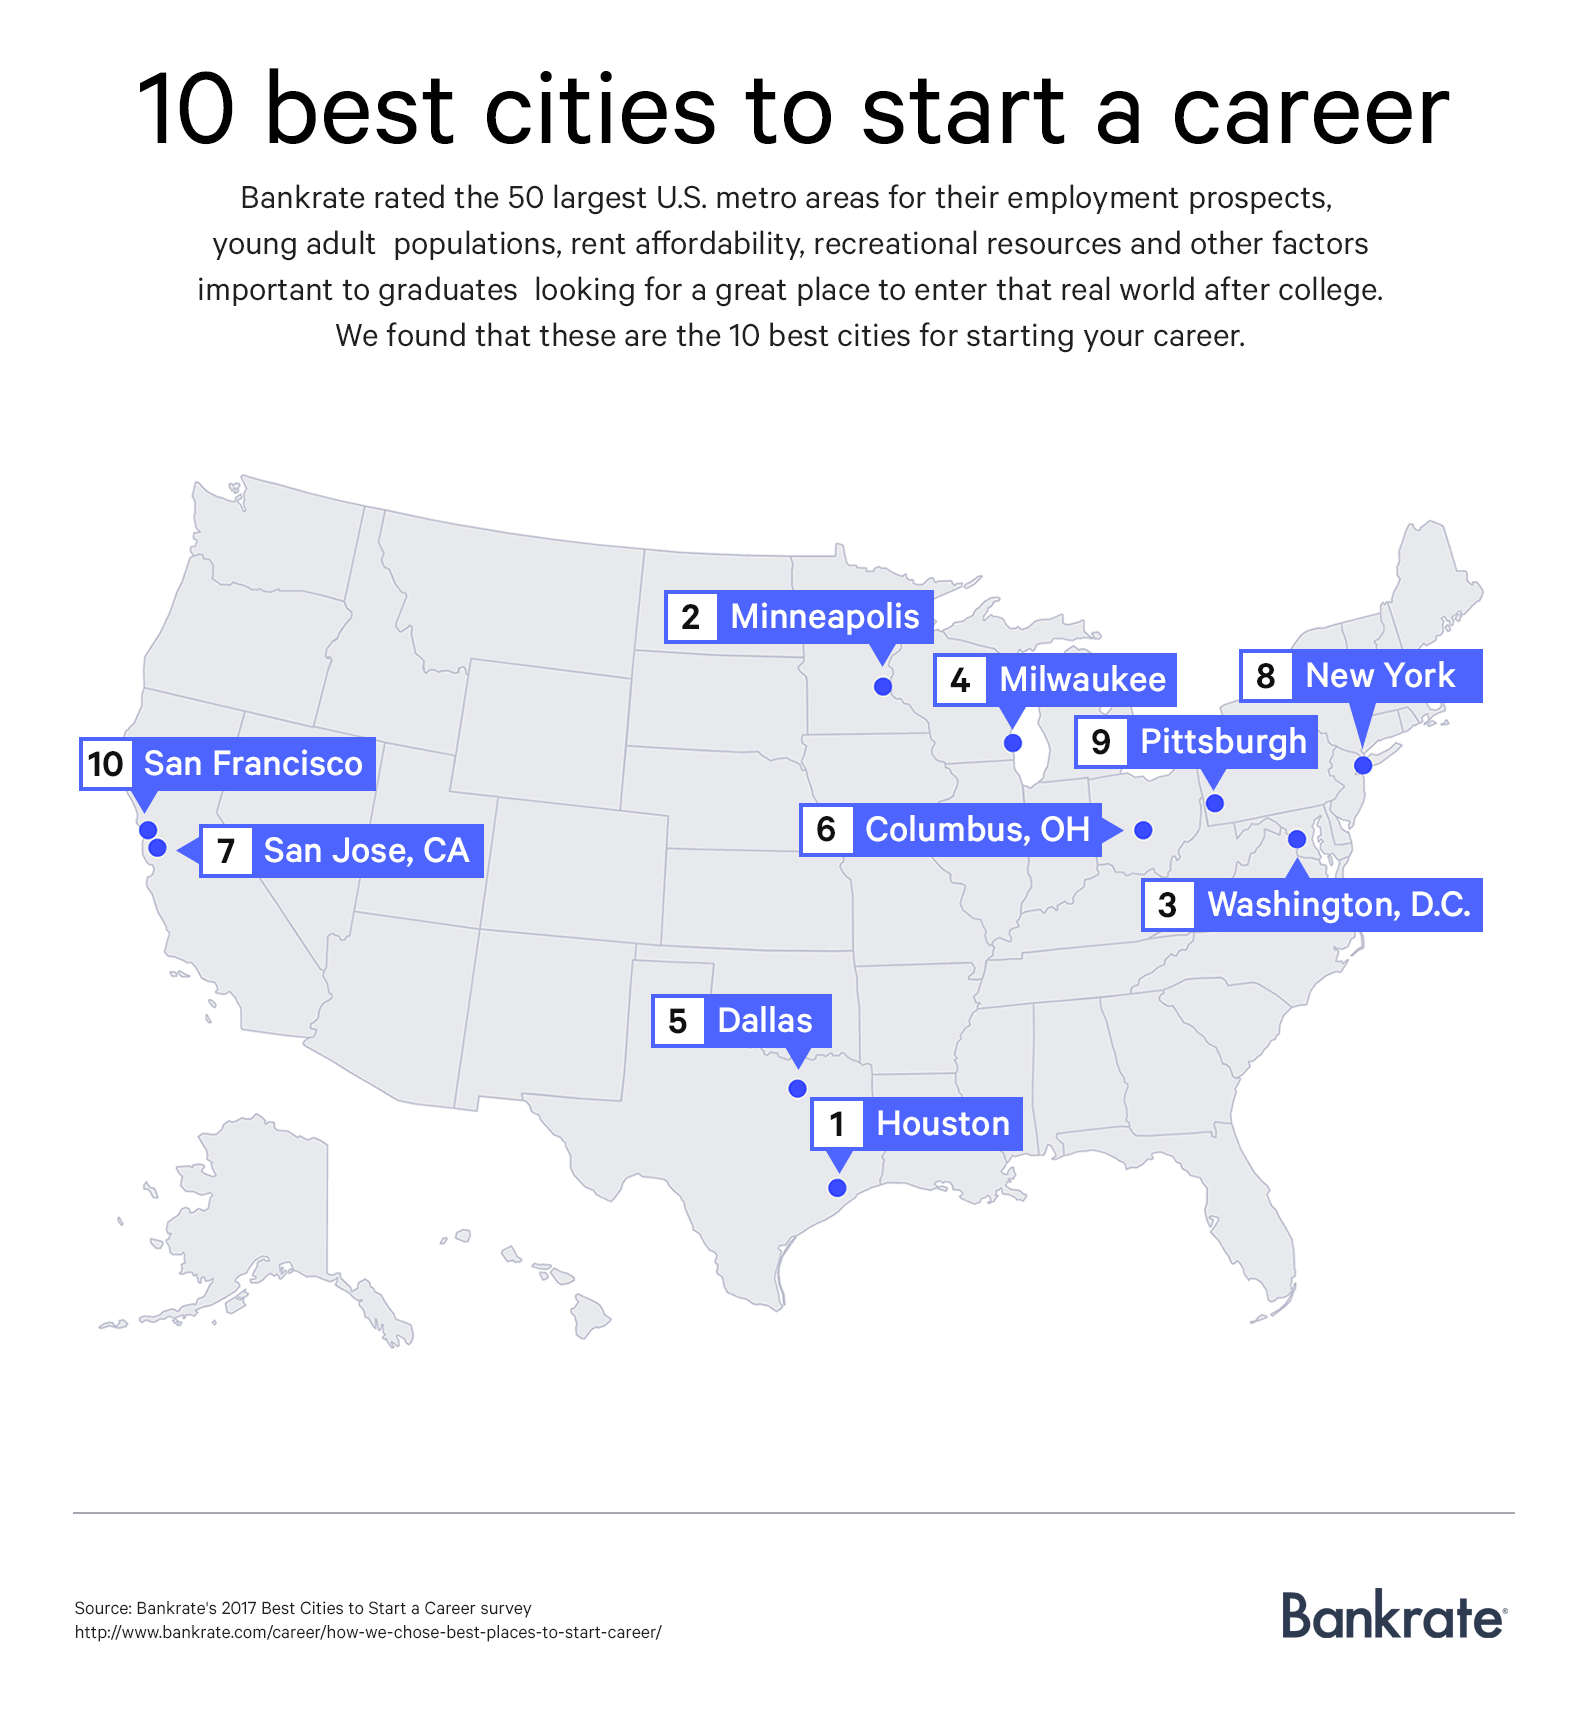 10 best cities to start a career